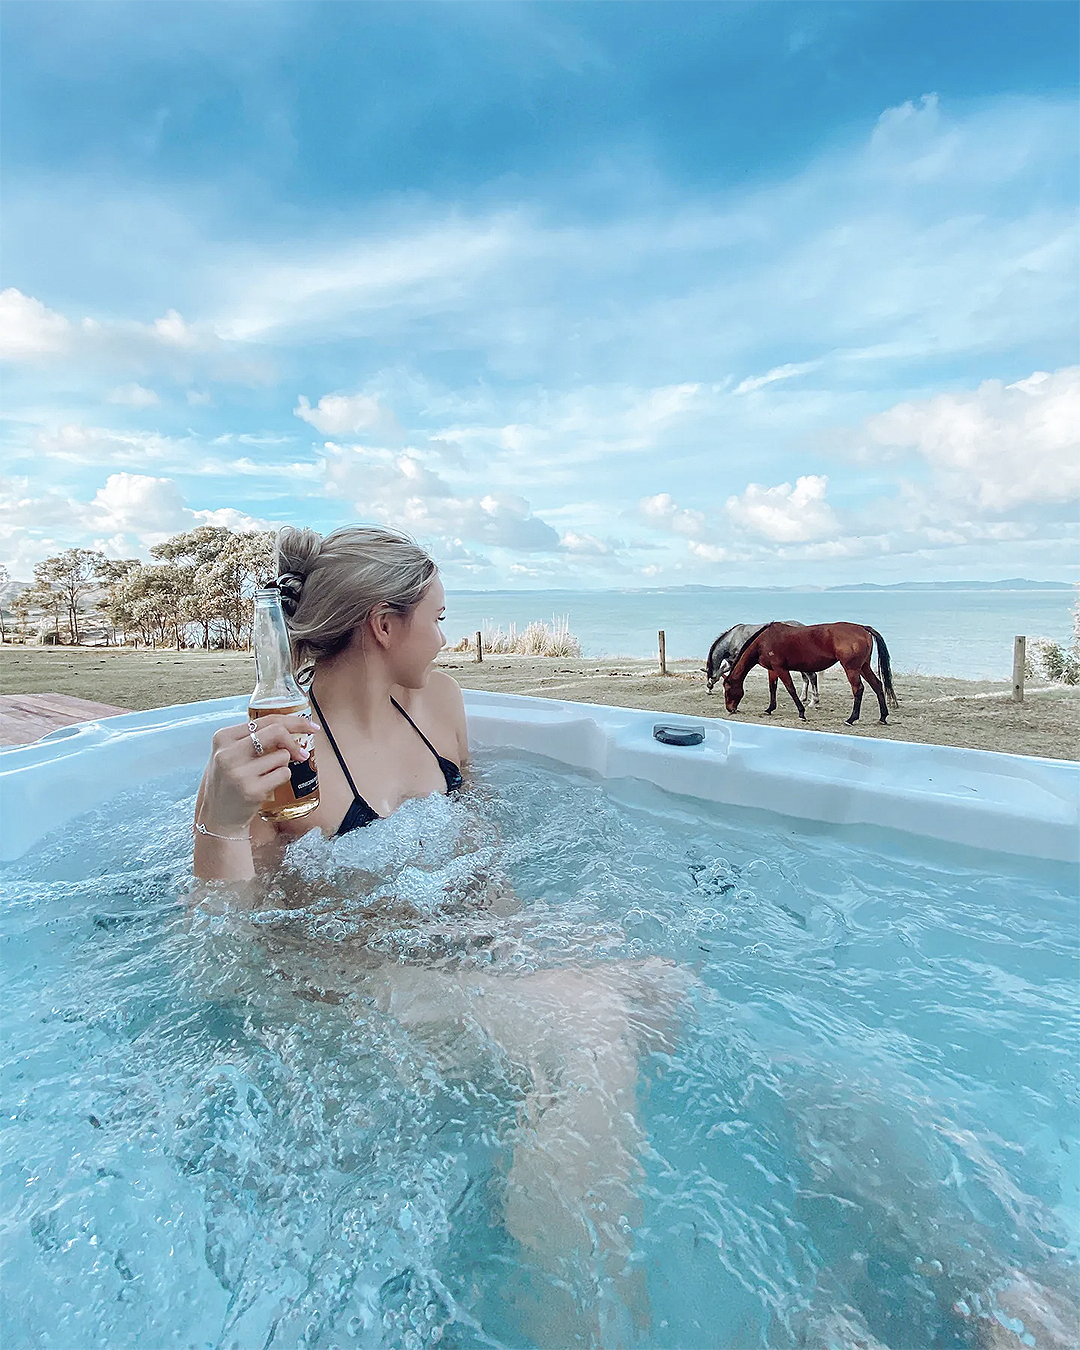 A woman looks at horses grazing from a hot tub.